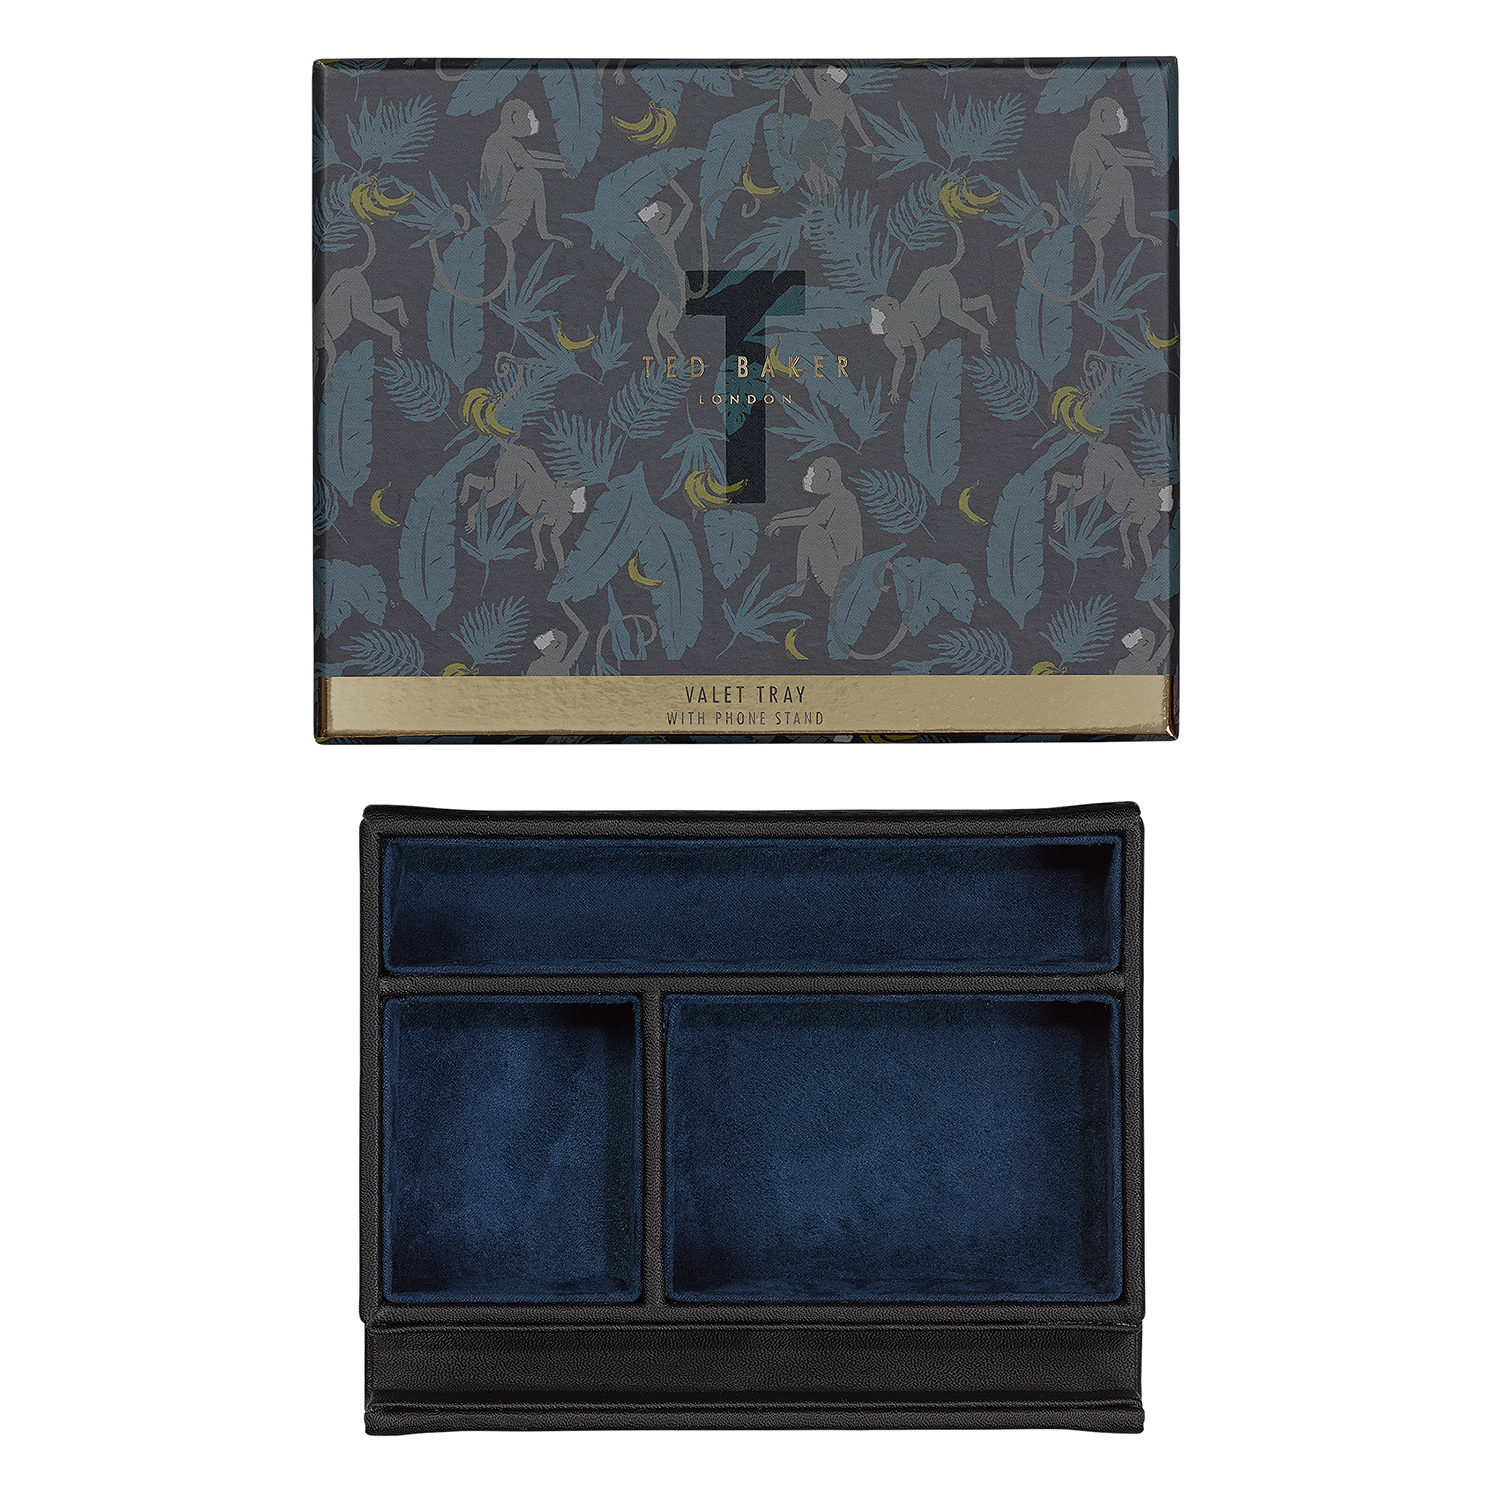 Ted Baker – Black Brogue Valet Tray with Phone Stand in Presentation Gift Box